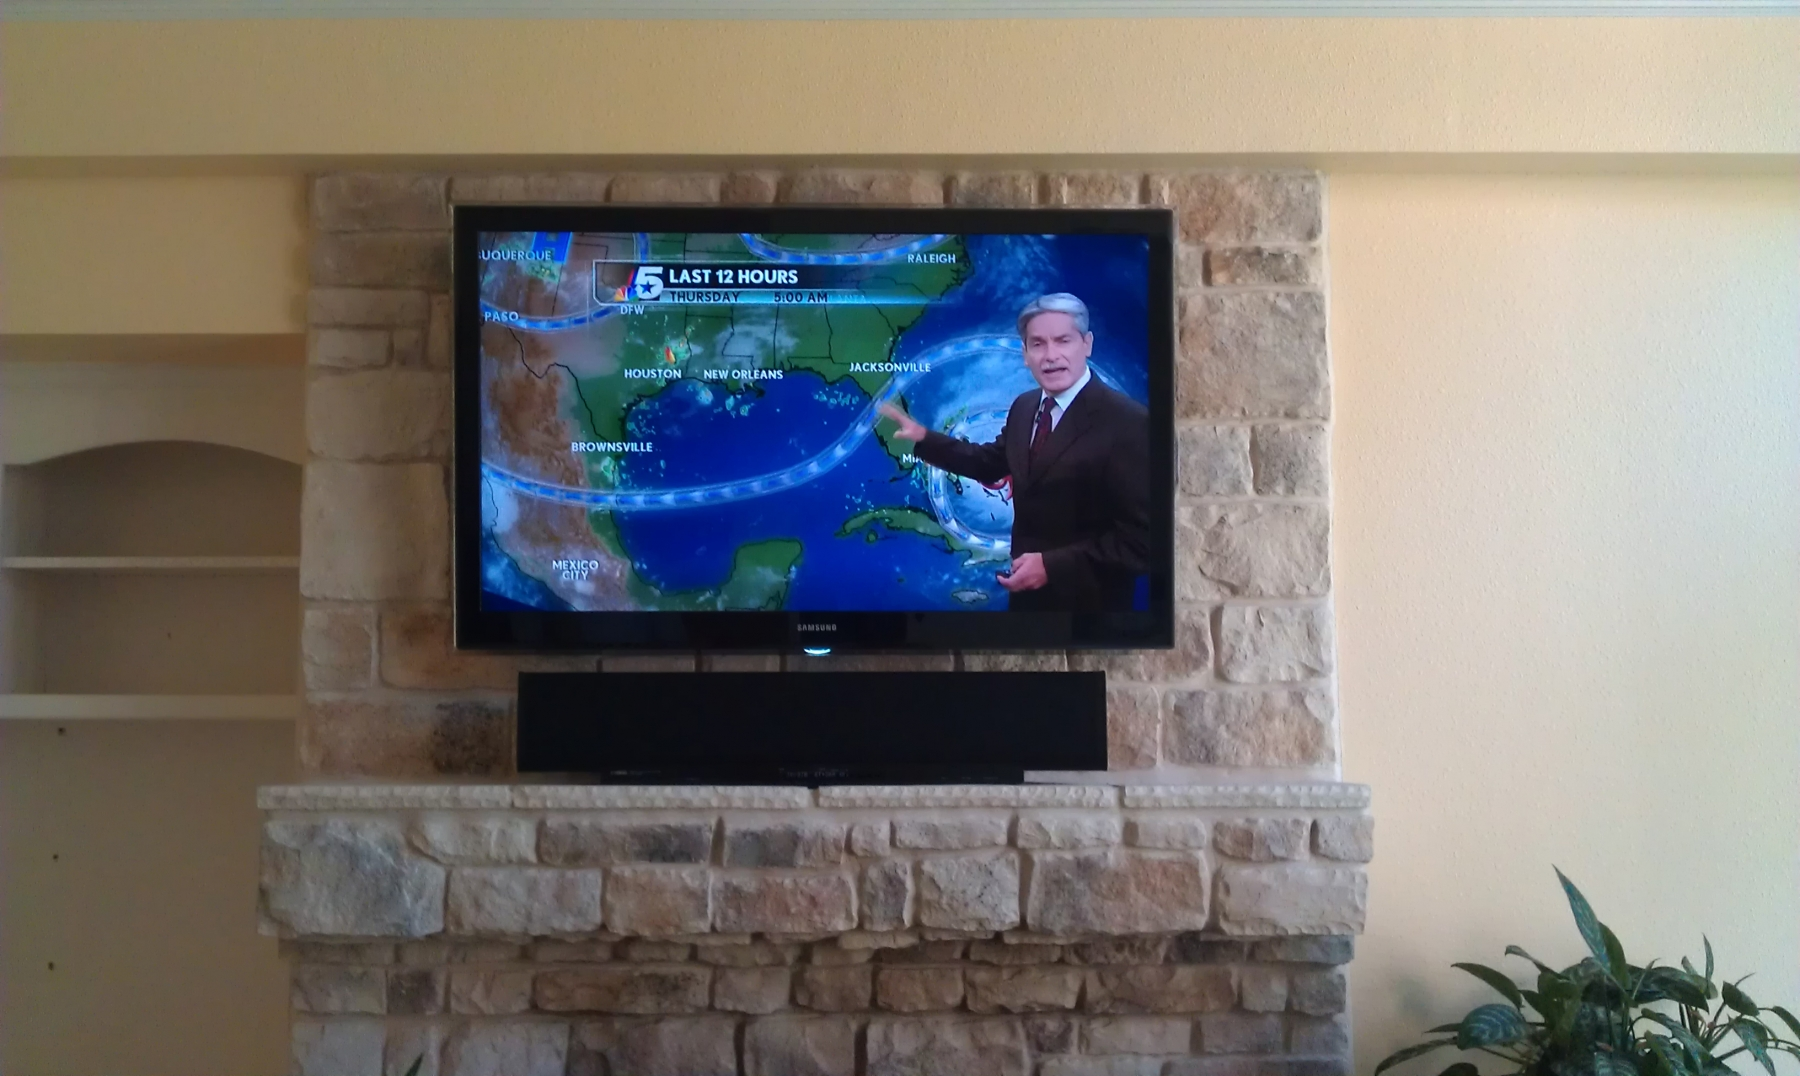 samsung flat screen tv on wall. photo samsung living room tv installed on stone with sound bar irving tx flat screen tv wall